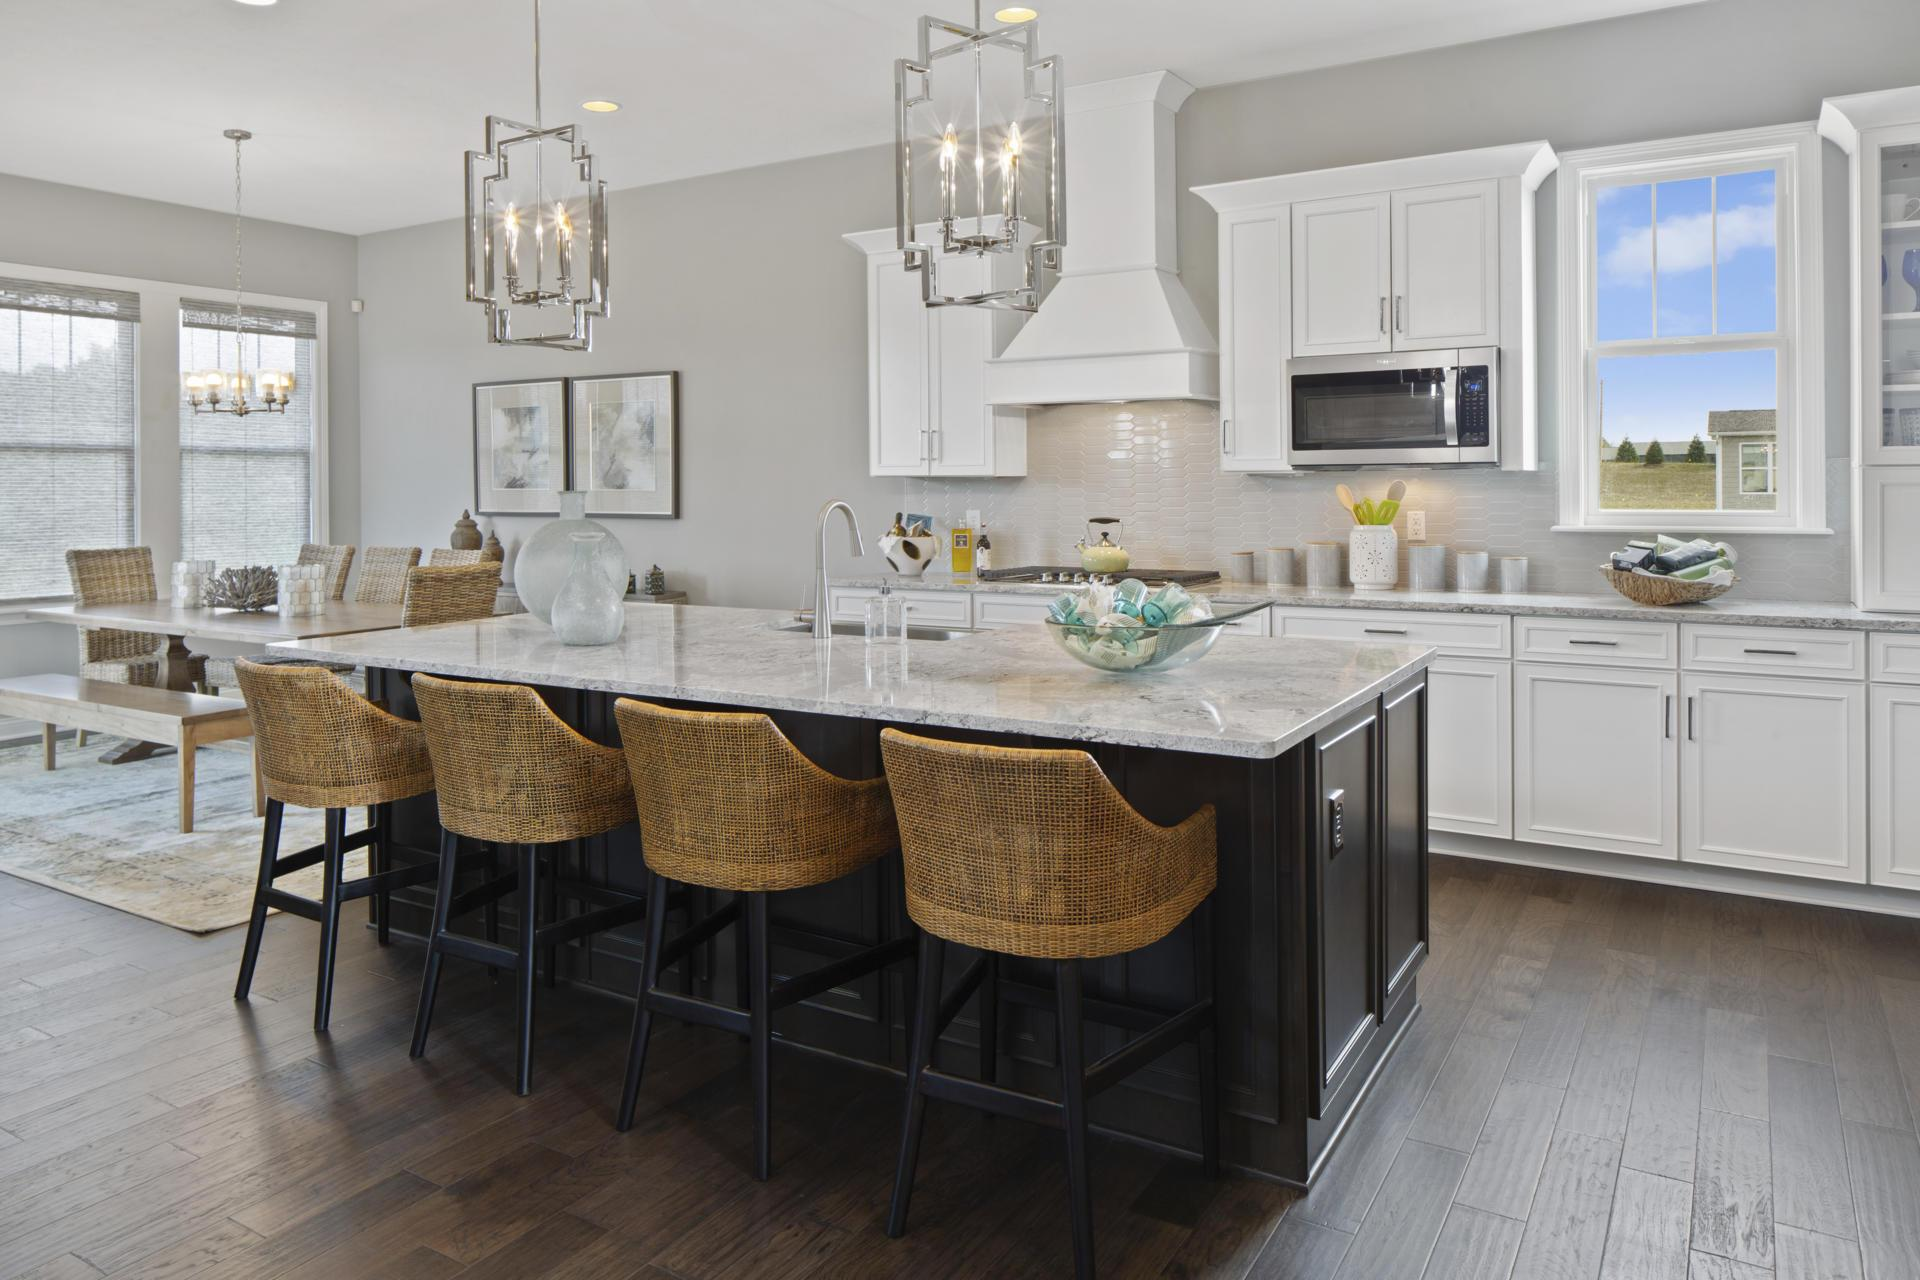 Kitchen featured in the Winfield By Drees Homes in Indianapolis, IN